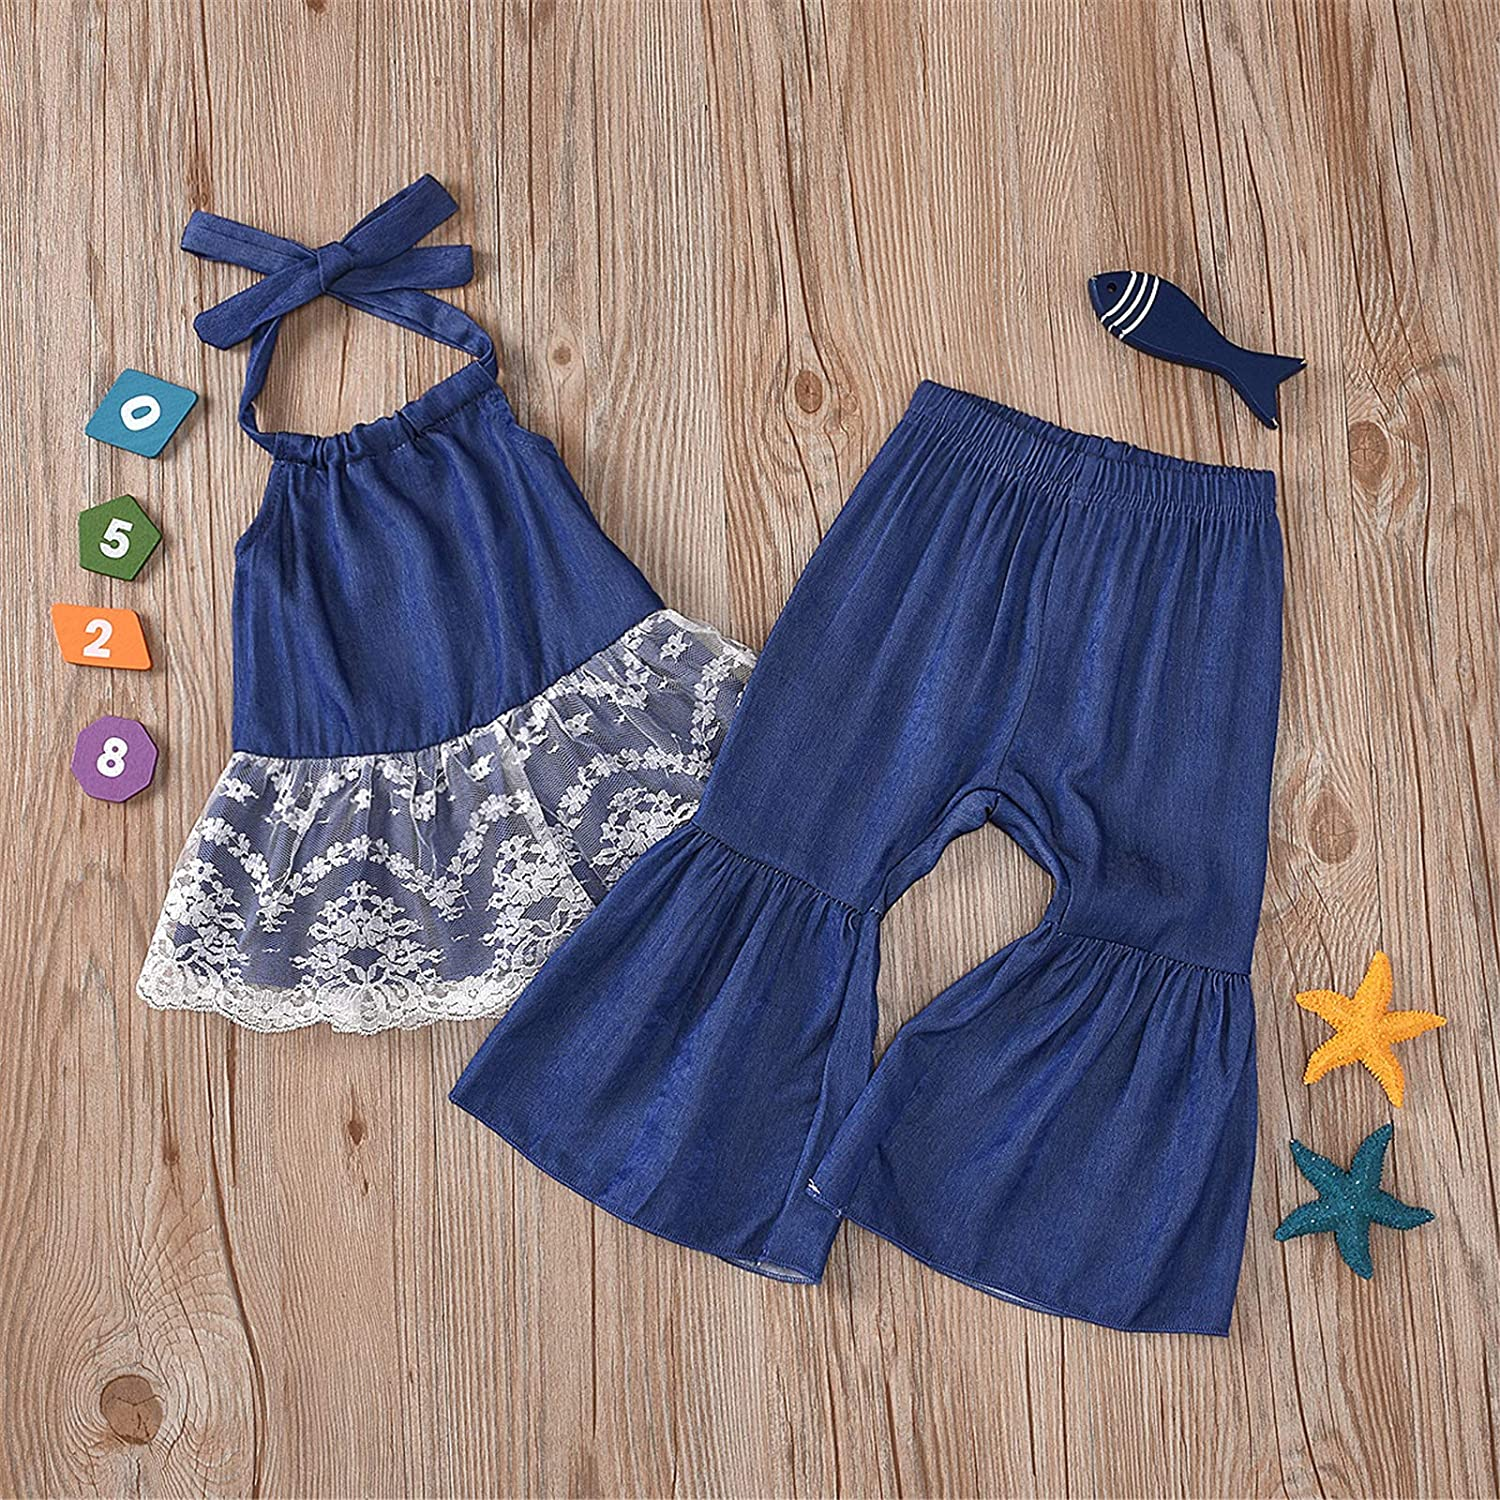 Toddler Baby Girl Clothes Short Sleeve/Sleeveless Top Shirt Bell Bottom Leopard/Jeans Pants Summer Outfits